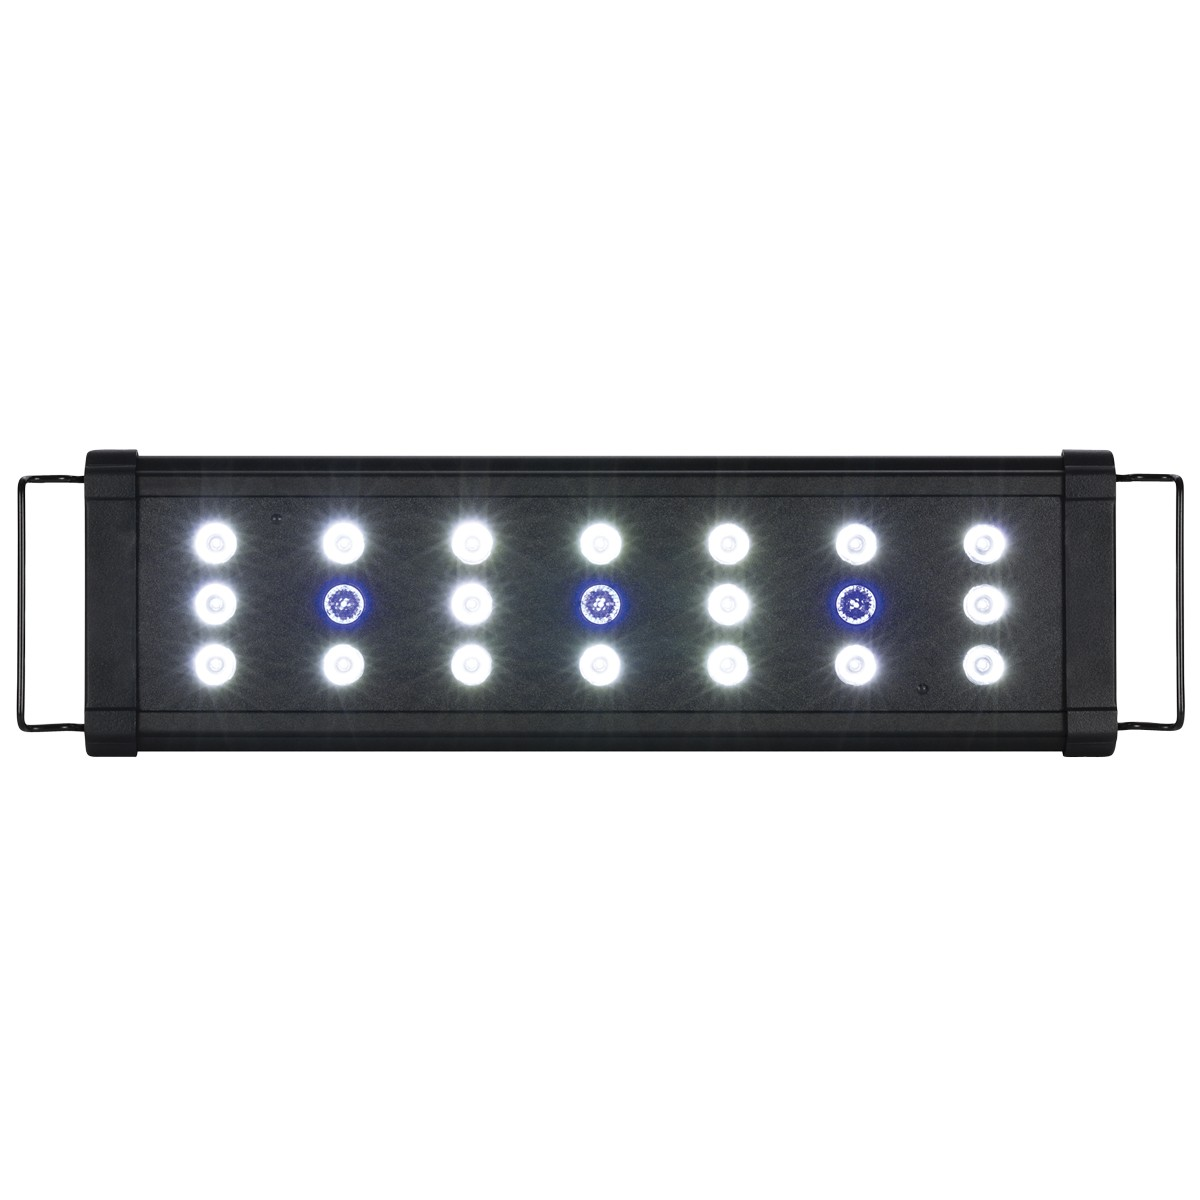 Marineland Reef LED Strip Lights